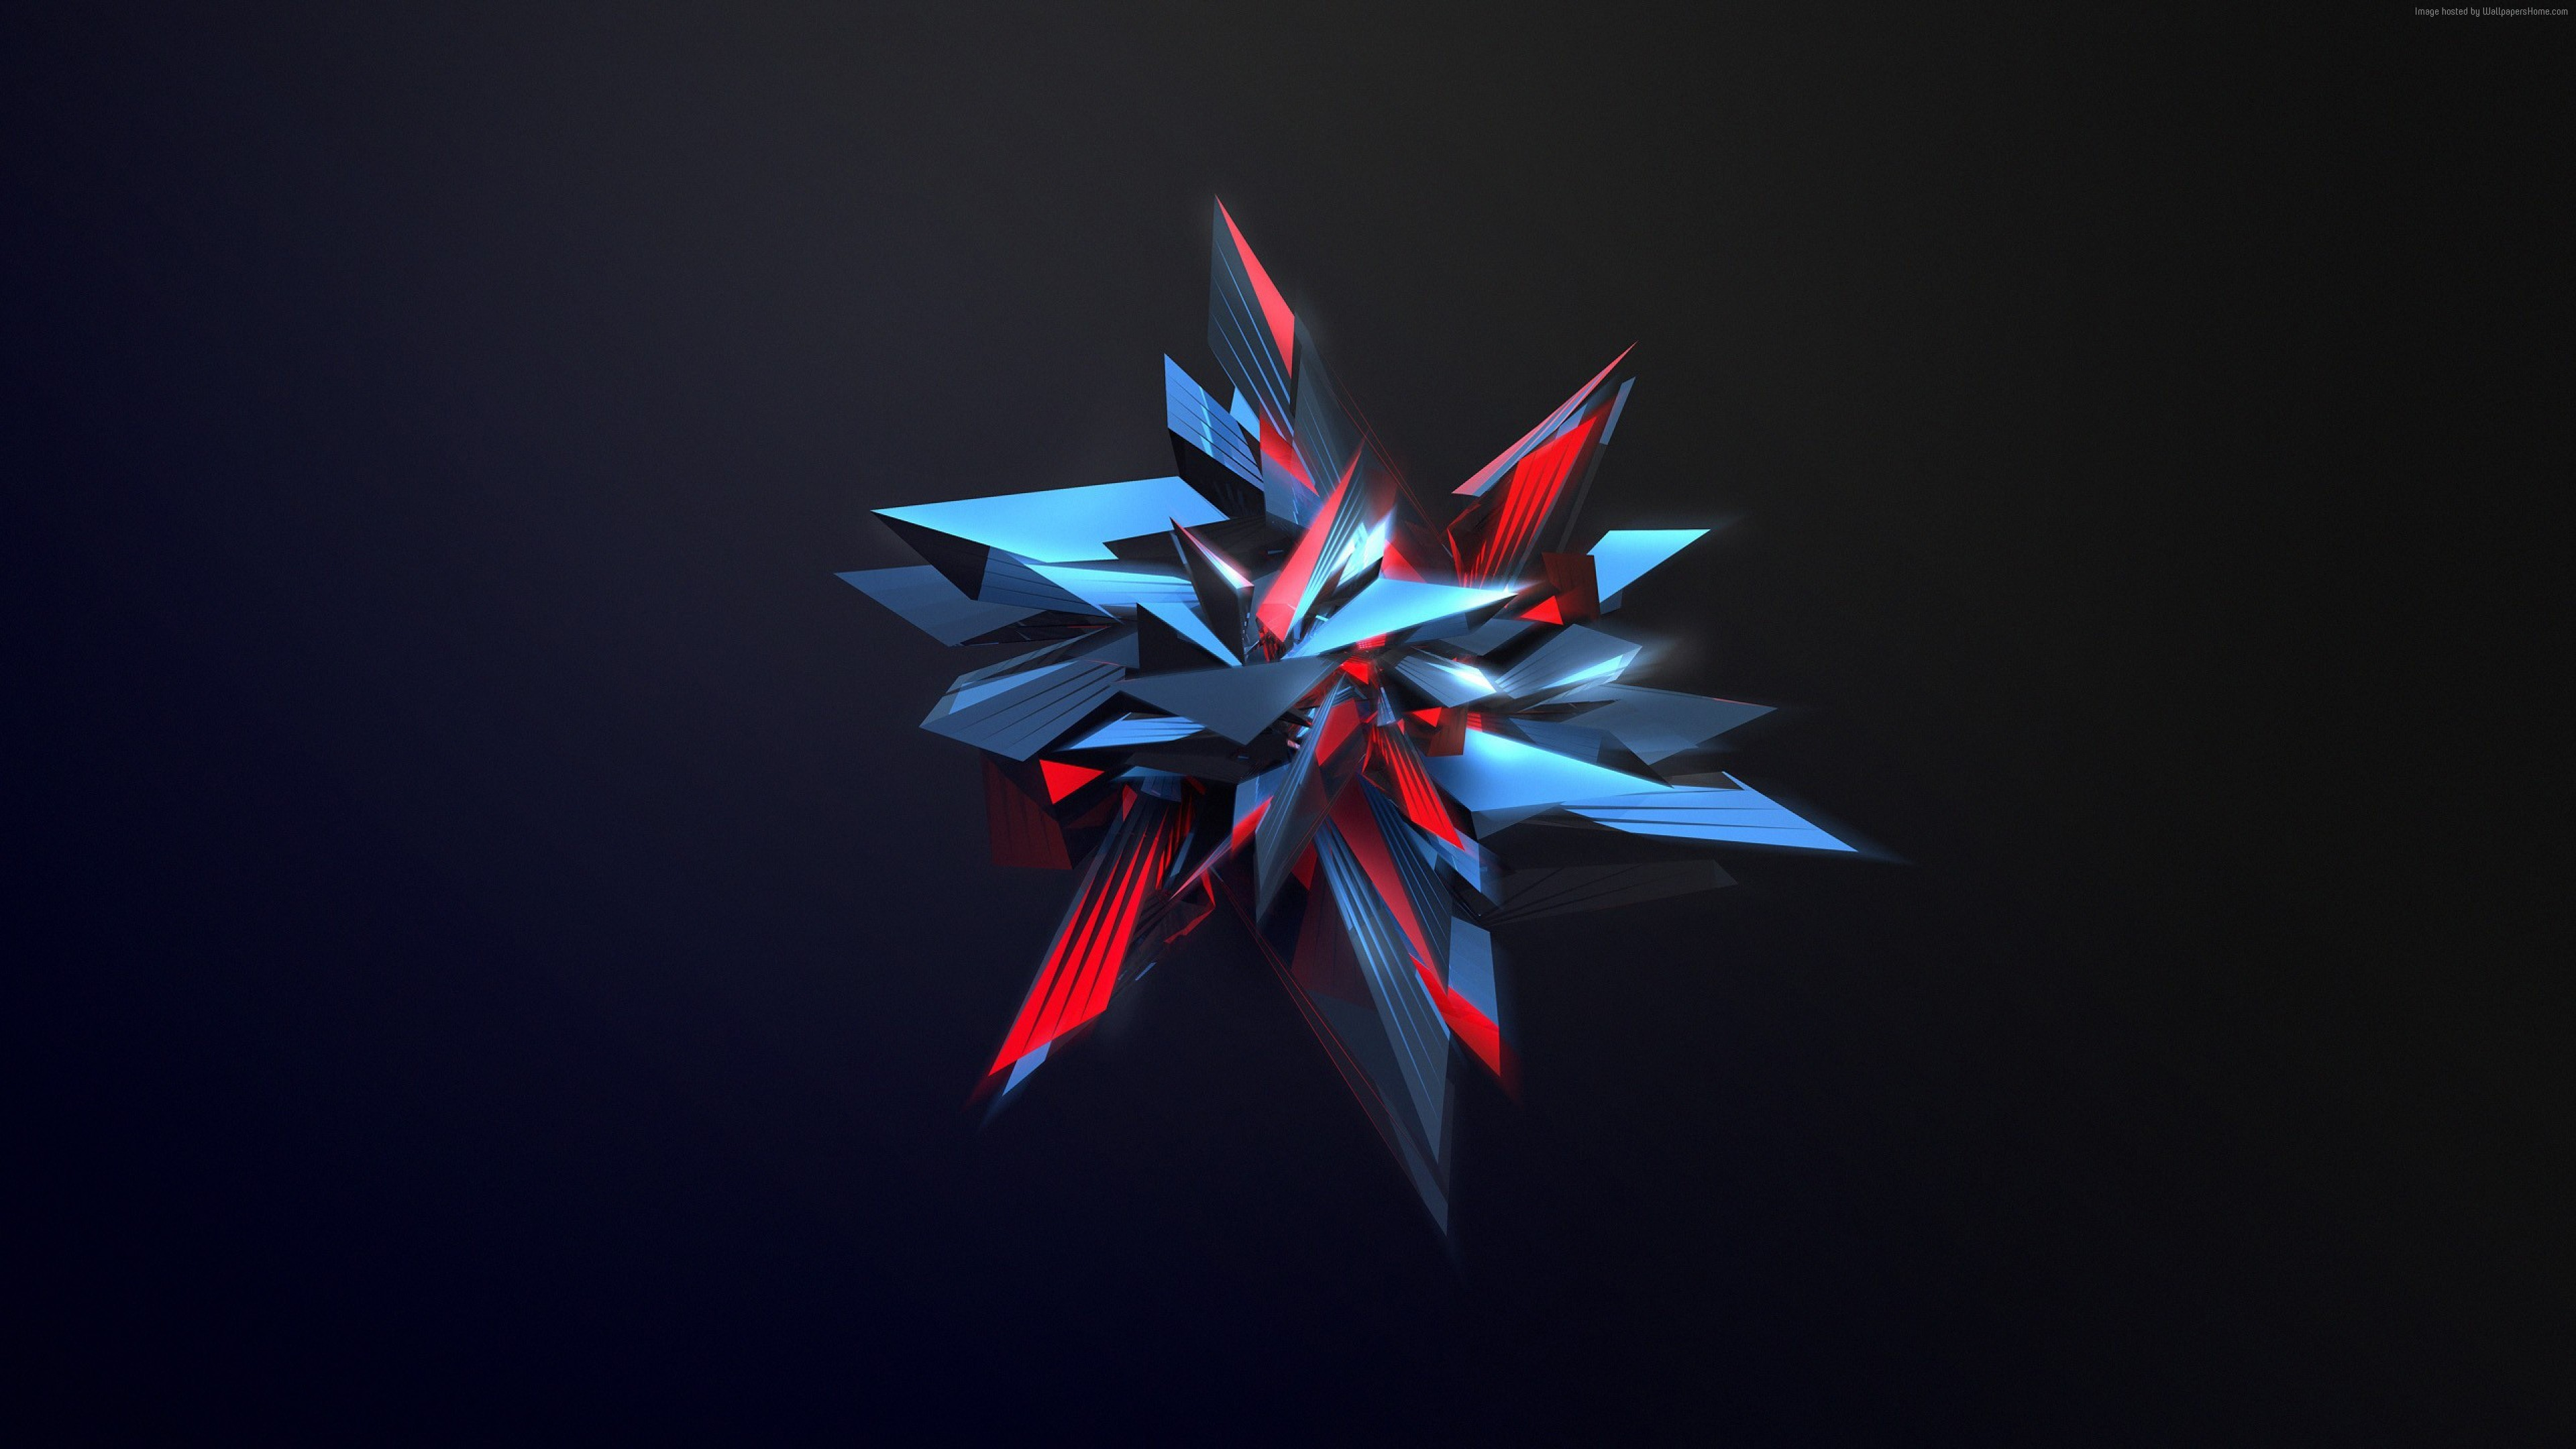 Res: 3840x2160, Wallpaper 3D, abstract, shapes, glass, 4k, Abstract